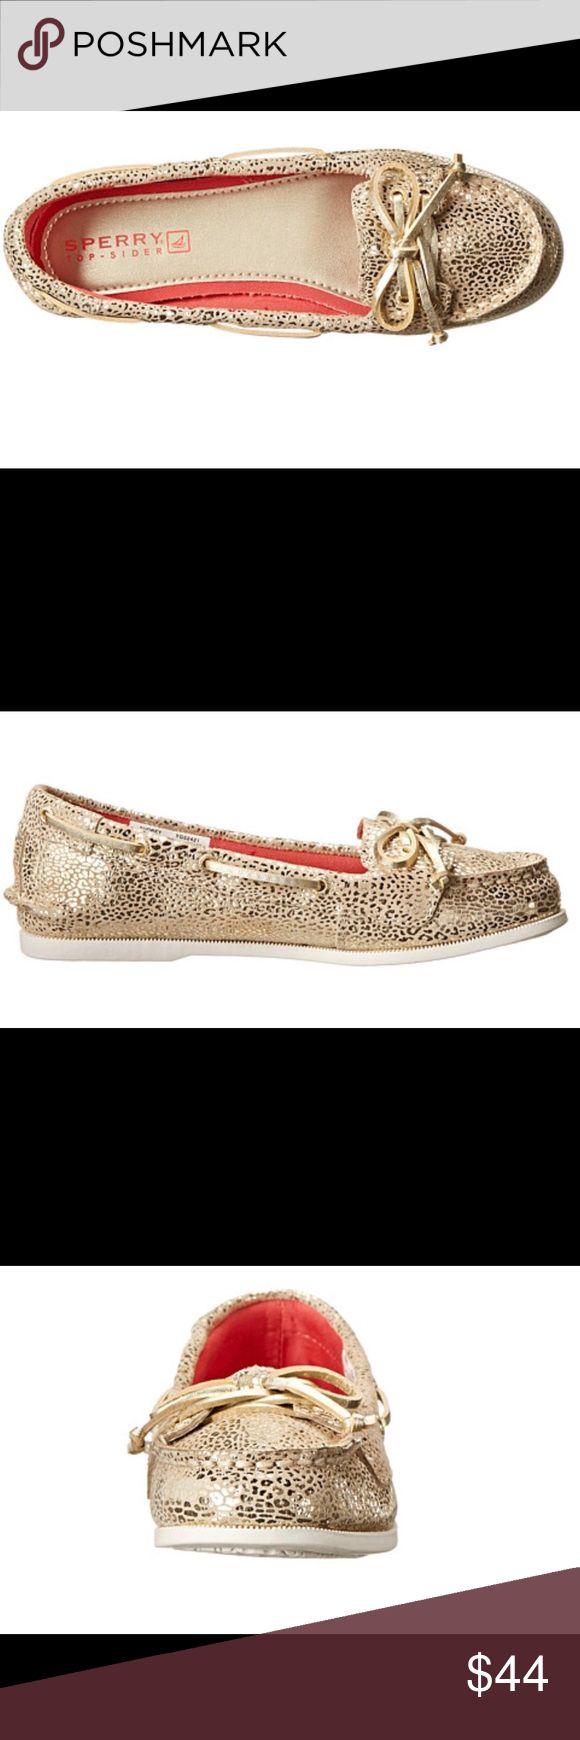 Authentic Sperry Top Sider Kid Lounge/Boat Shoes Brand New and super affordable Authentic Sperry Top-Sider Kids Audrey (Little Kid/Big Kid) Champagne Leopard Shoes. These shoes are great for boating, sailing, golfing, beach wear, land wear, and a whole lot more! You cannot go wrong adding these shoes to your wardrobe. They are so comfortable and can be worn for long periods of time.  B19 Sperry Shoes Moccasins